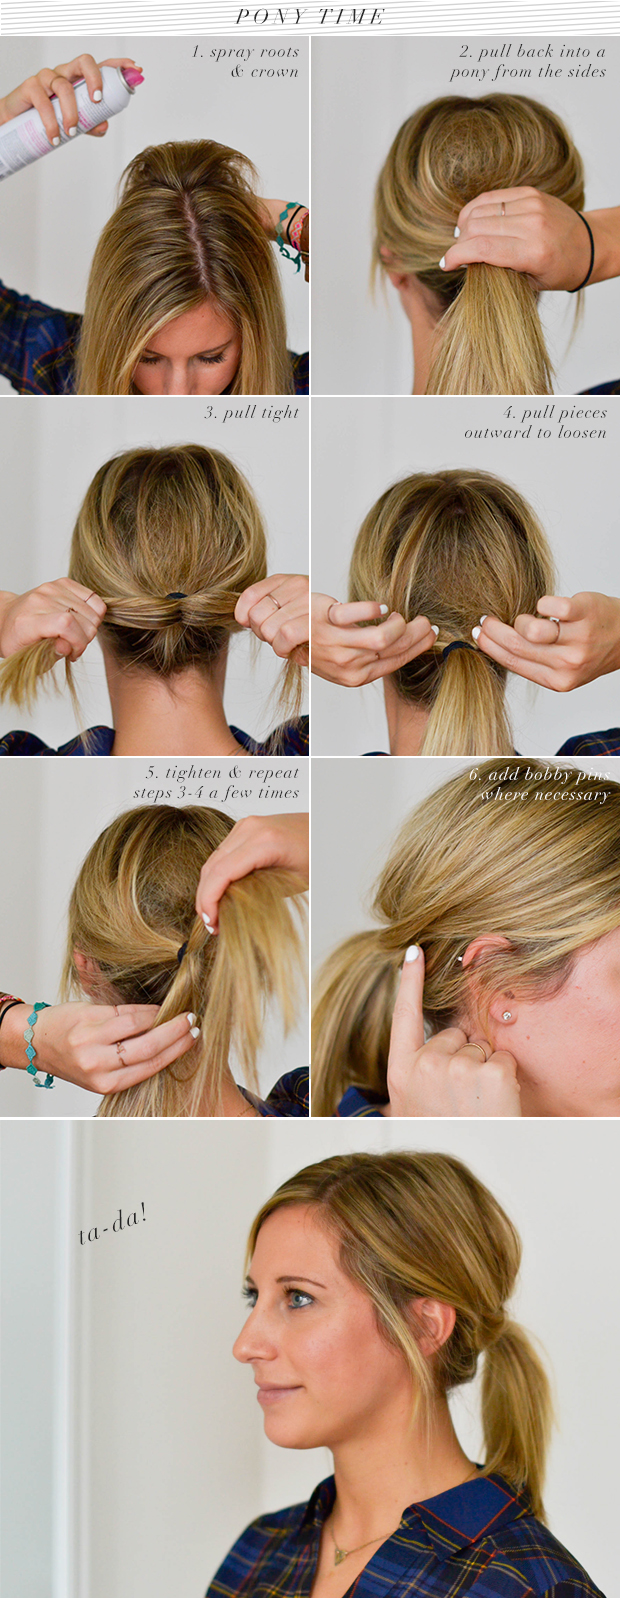 dove ponytail tutorial